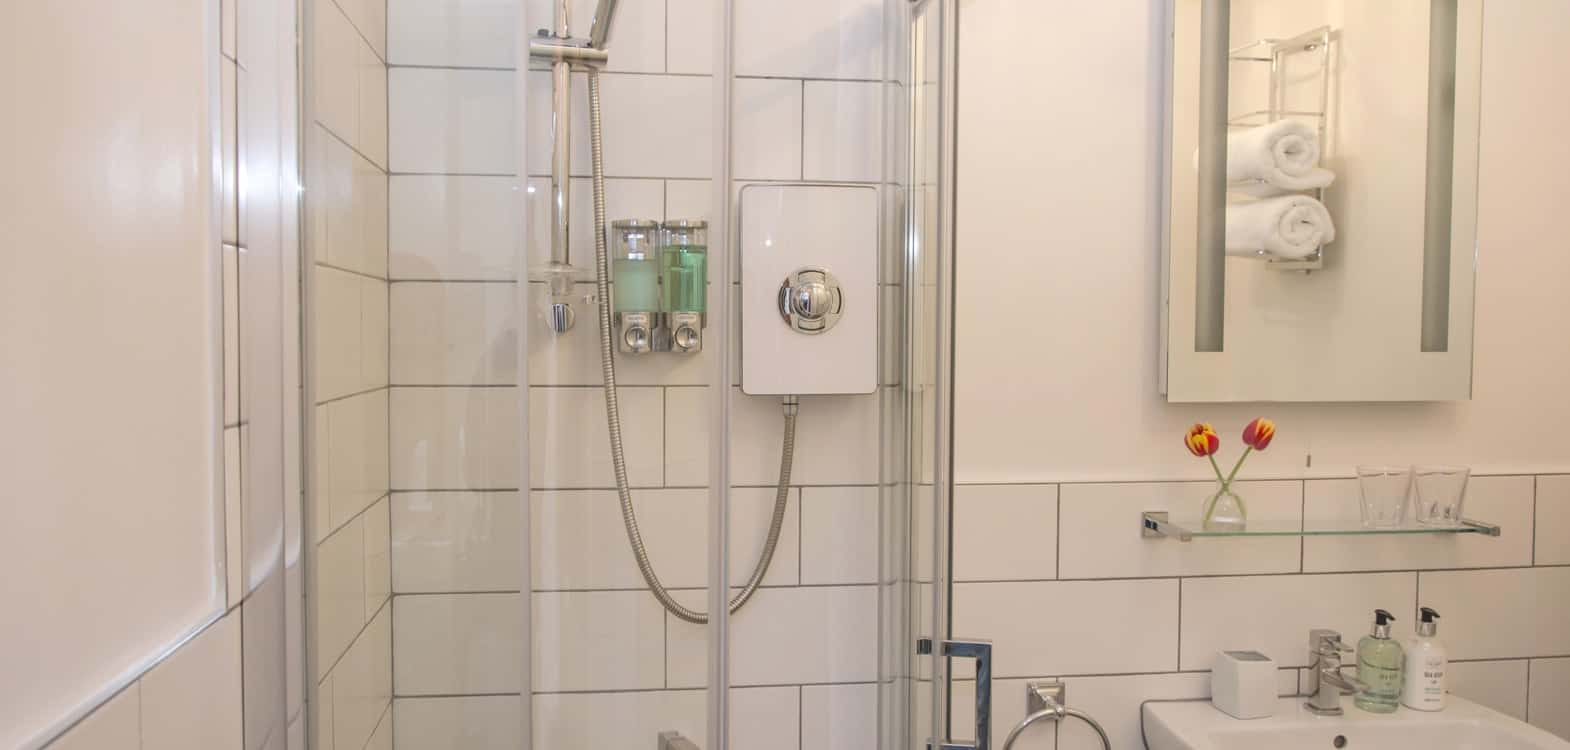 Shower cubicle showing white bathroom suite and heated mirror at Firhall B&B Scotland